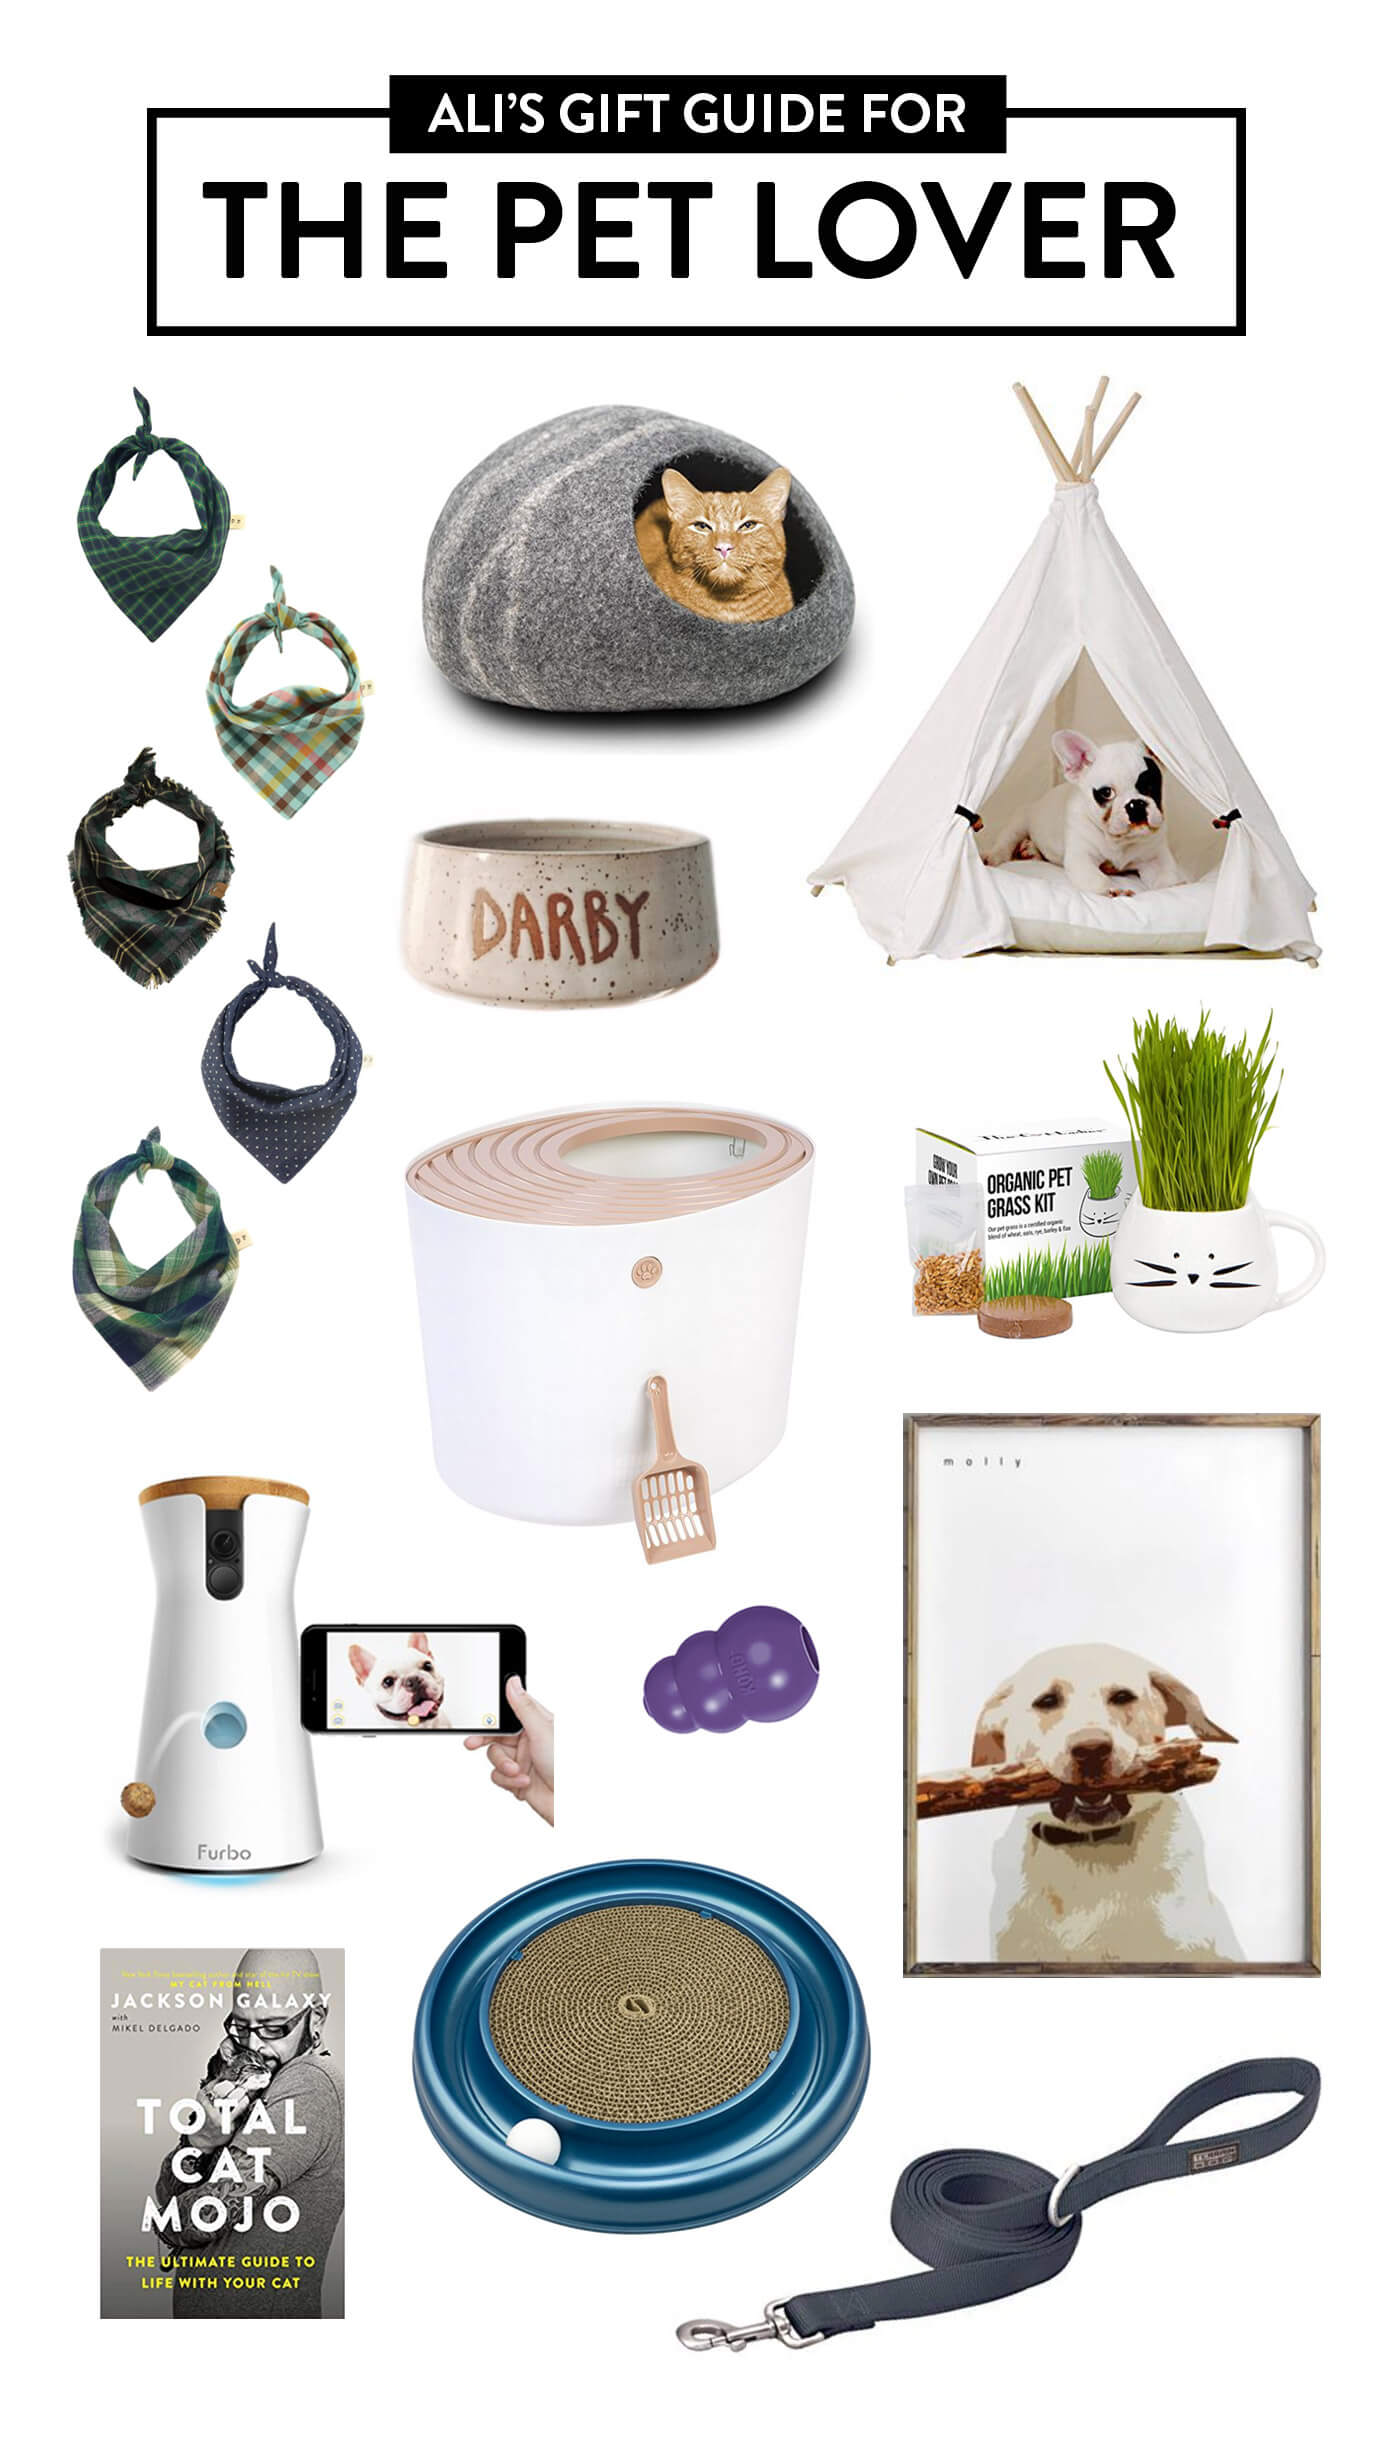 2018 Gimme Some Oven Holiday Gift Guide: The Pet Lover